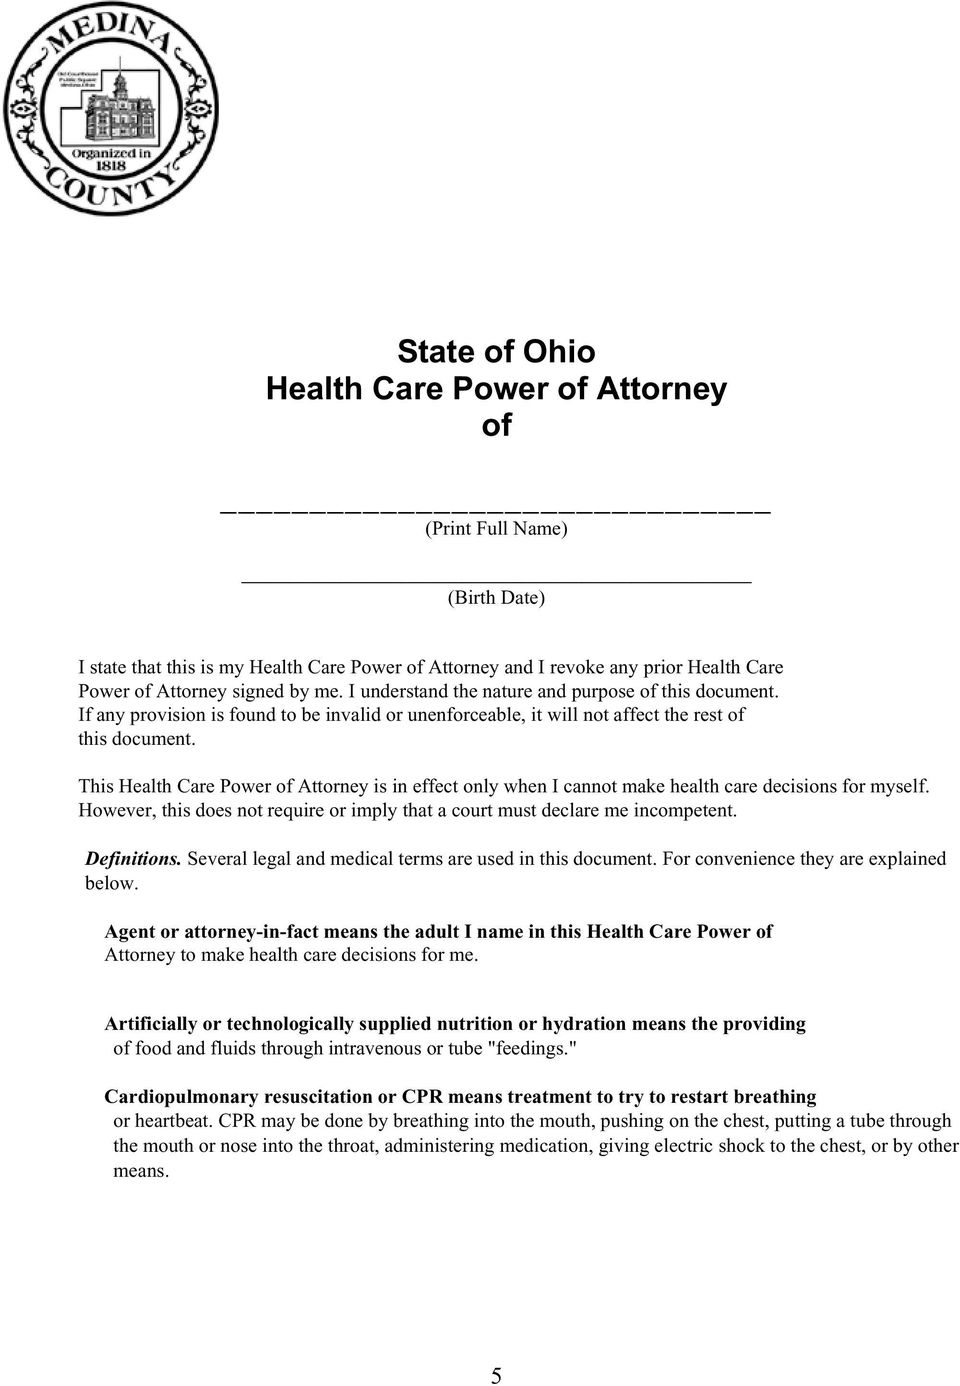 This Health Care Power of Attorney is in effect only when I cannot make health care decisions for myself. However, this does not require or imply that a court must declare me incompetent. Definitions.